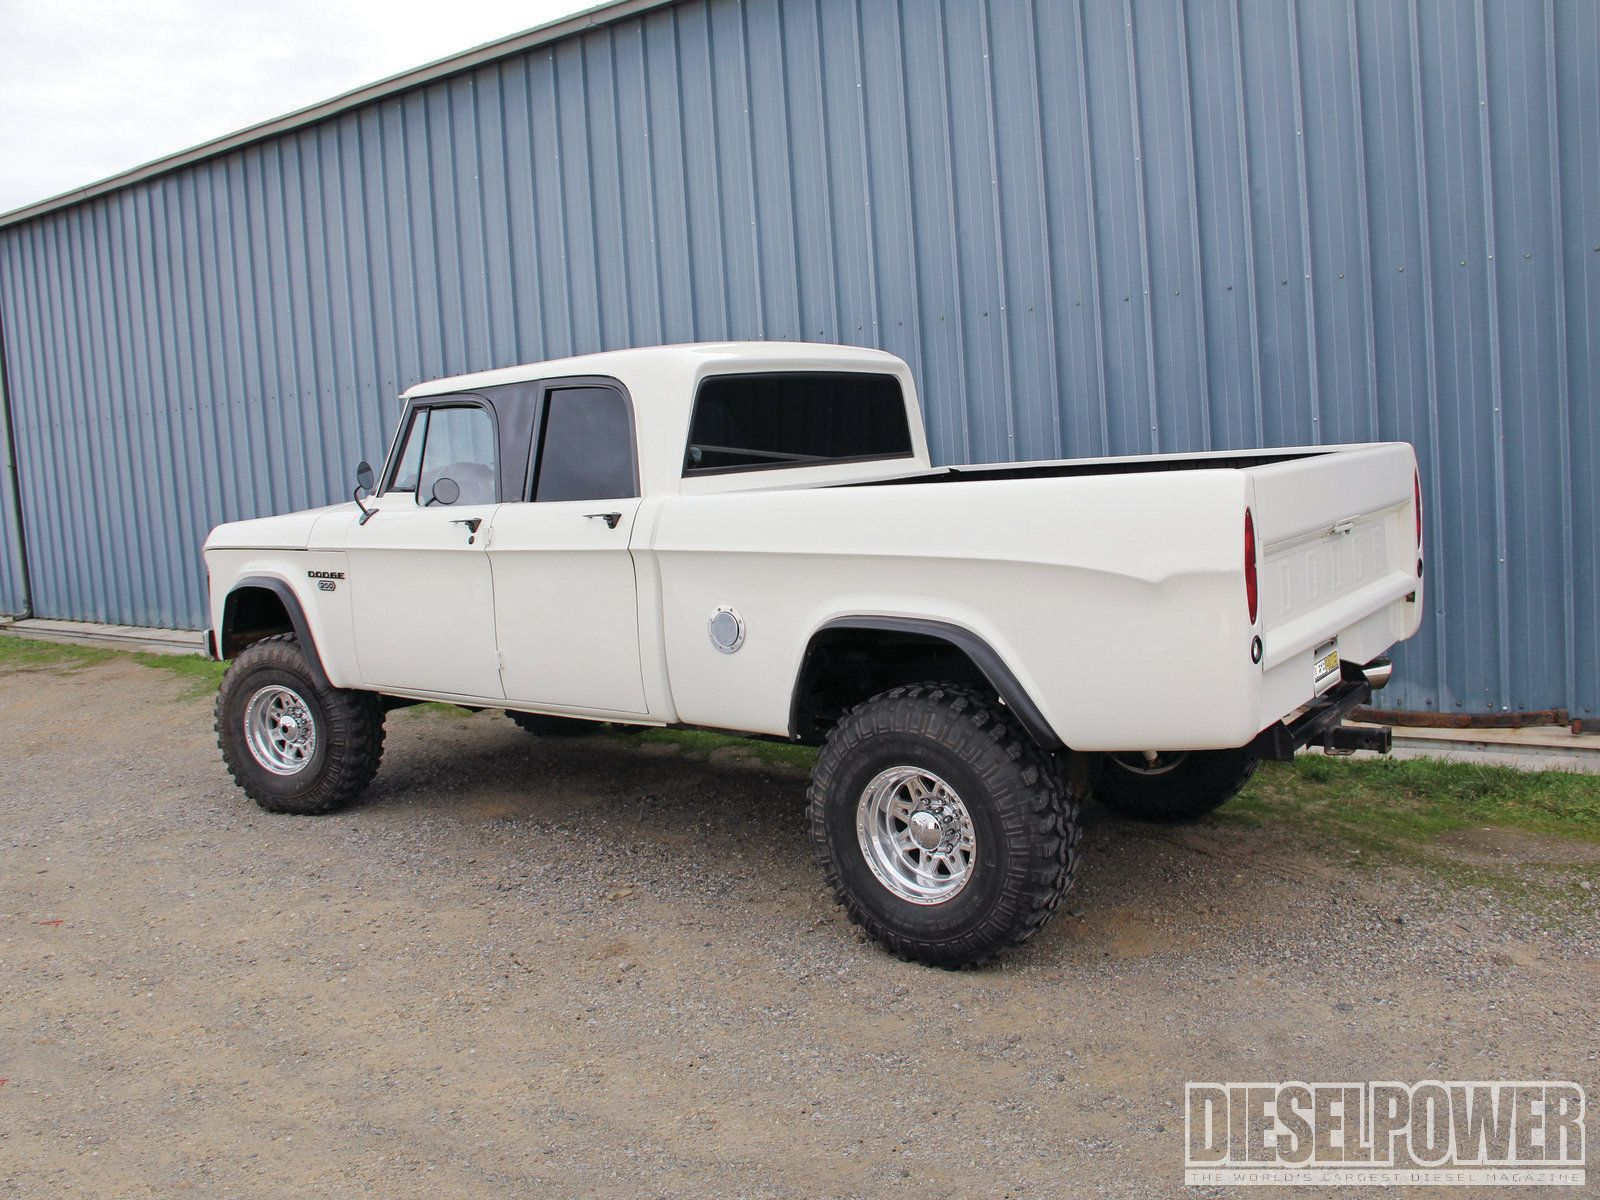 Cummins Powered 1968 Dodge Crew Cab we had one of these when I was a